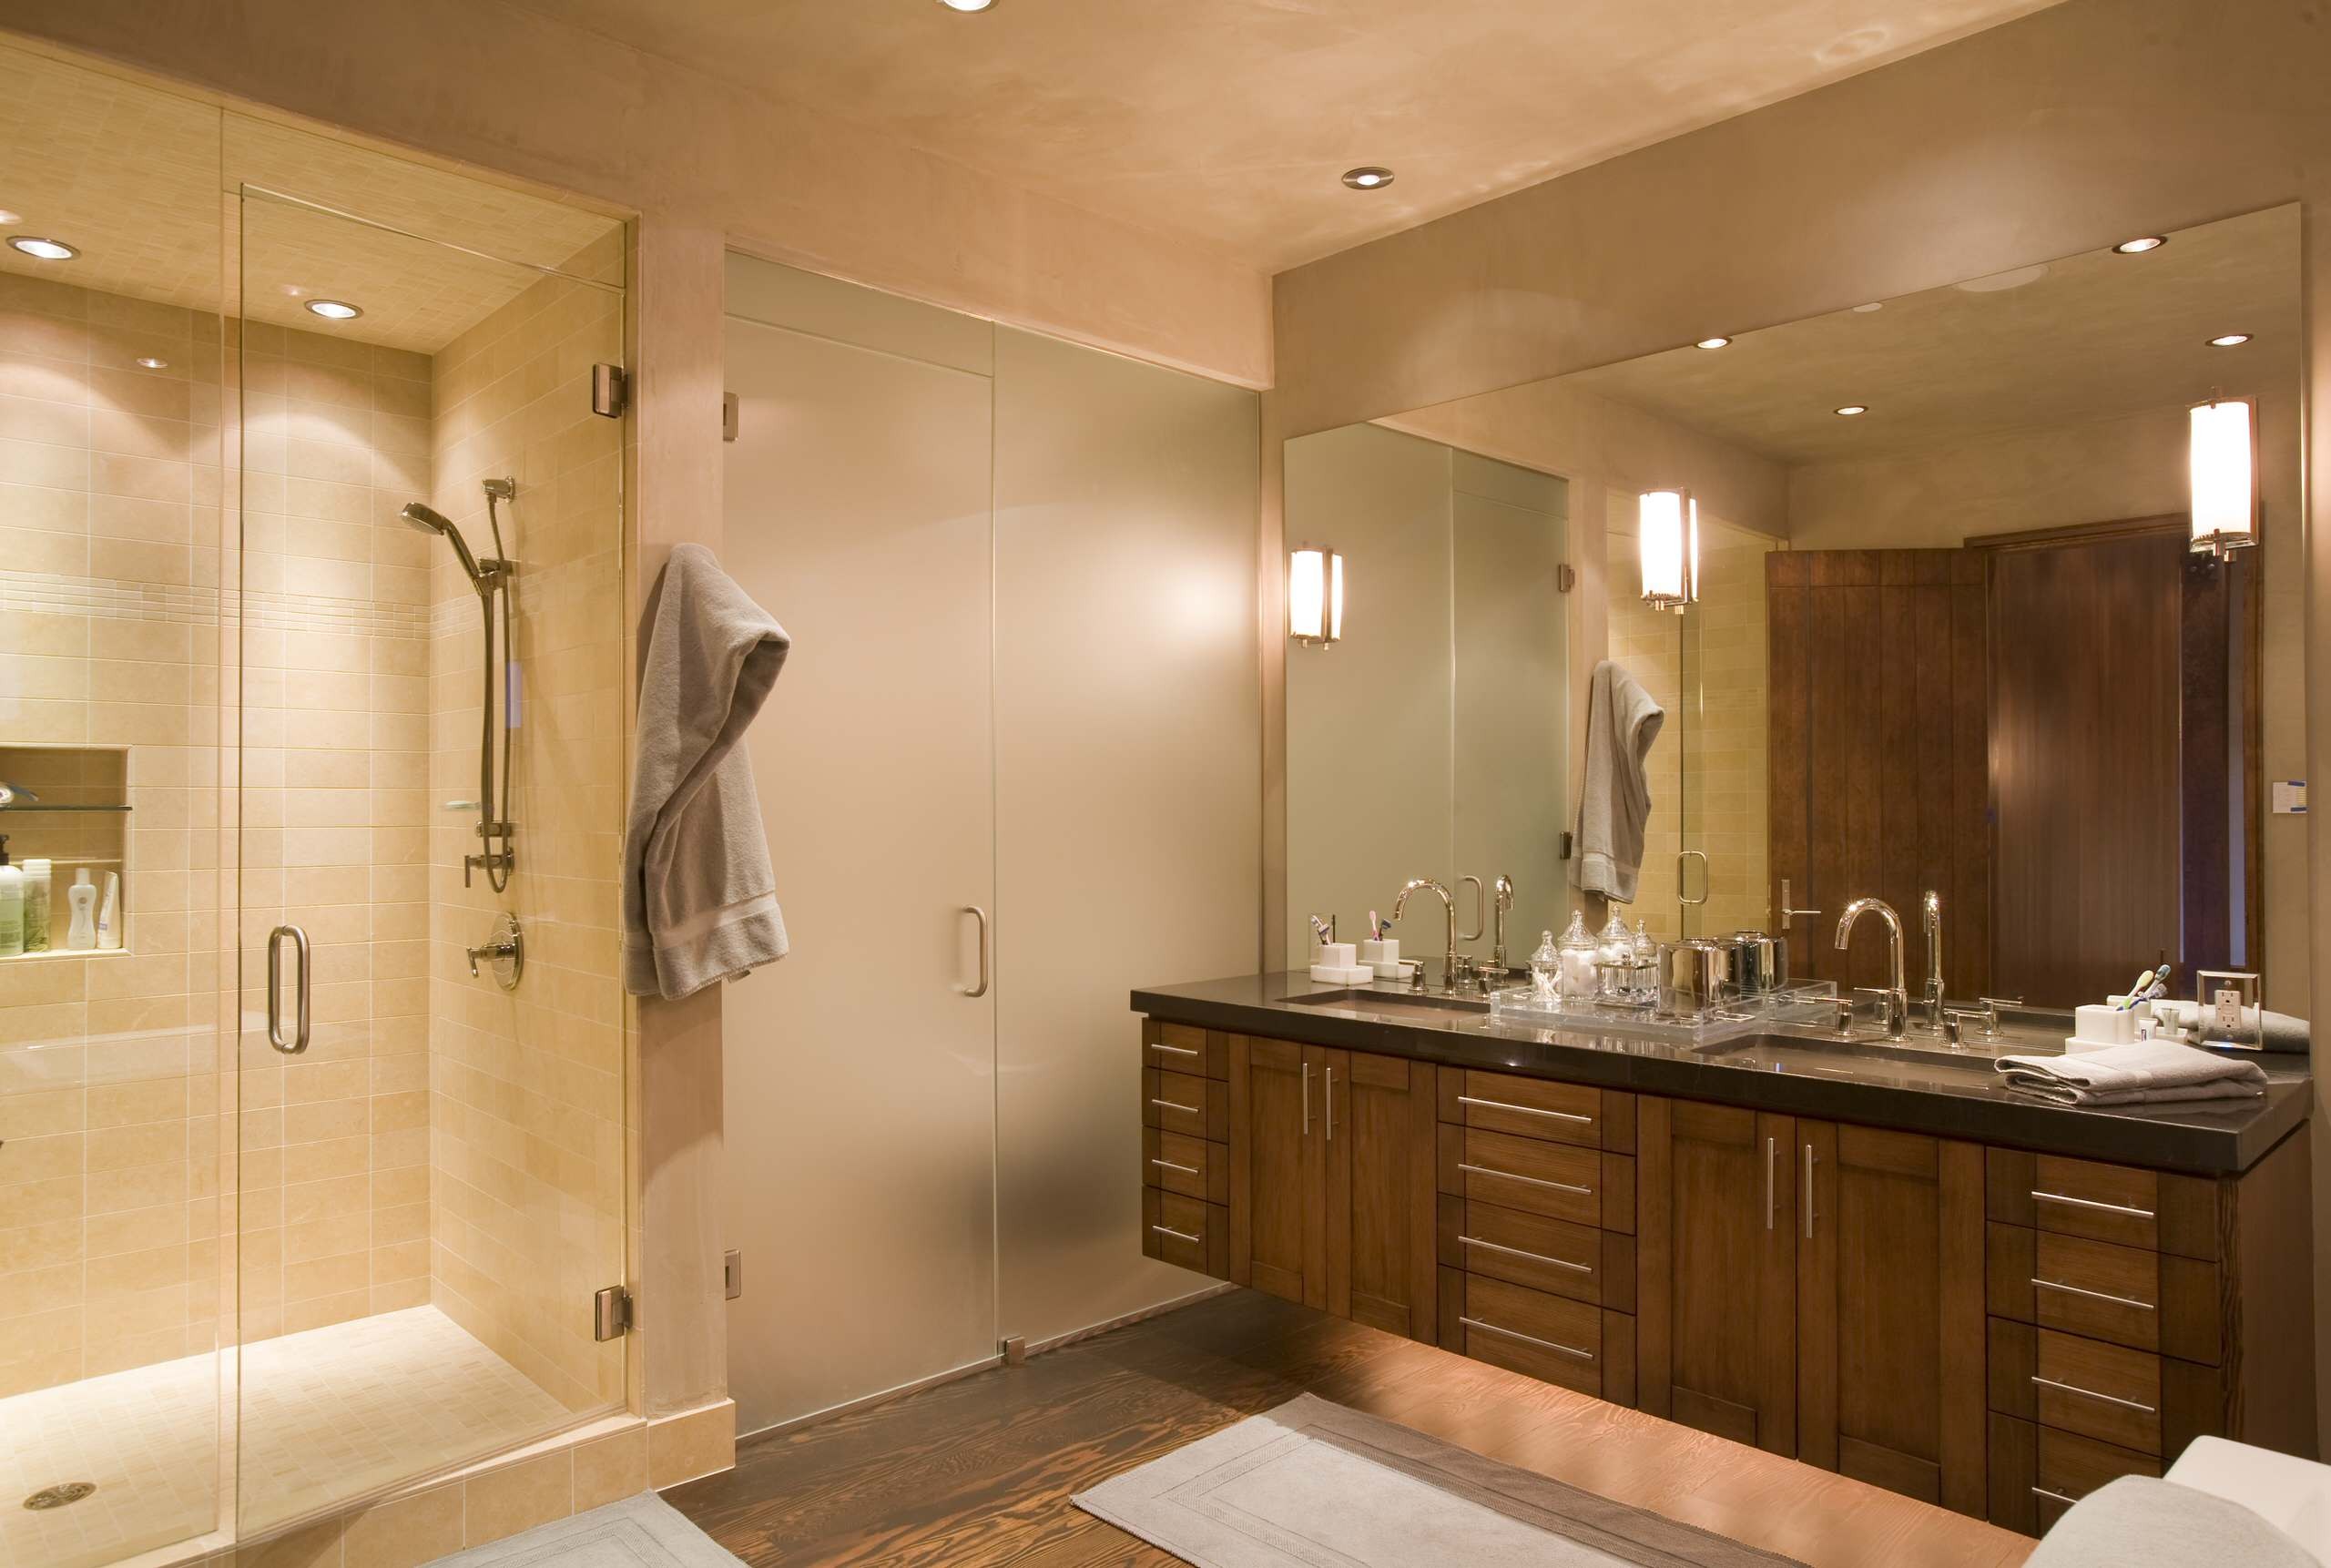 Inspiration for Remodeling Bathroom Using Water Closet: Backlighting And Bathroom Hardware Plus Bathroom Mirror In Contemporary Bathroom With Ceiling Lighting And Dark Flooring Plus Floating Vanity Also Water Closet With Frosted Glass